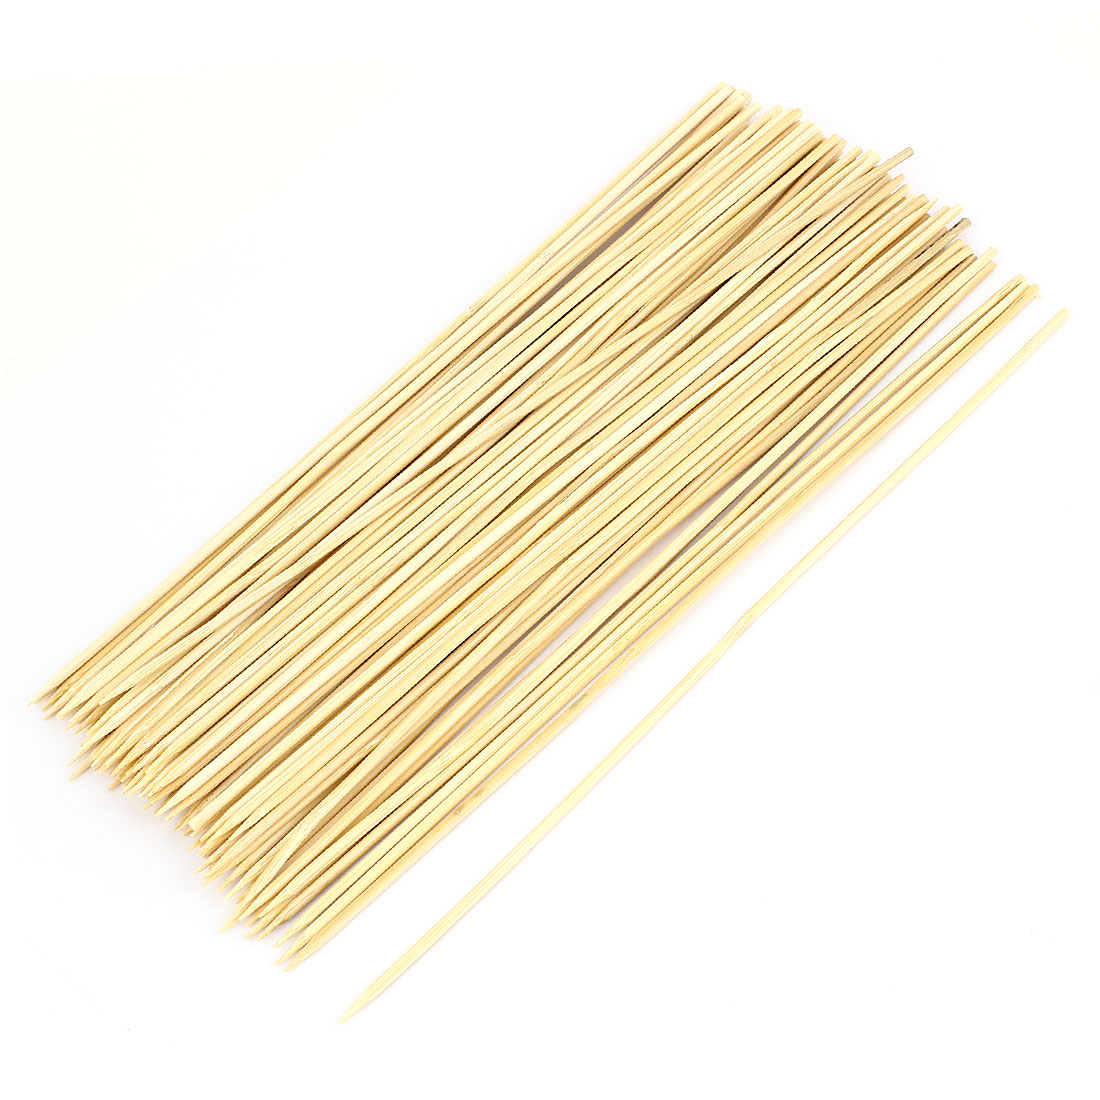 Outdoor 30cm Beige Wooden BBQ Hot Dog Needle Barbecue Stick 90 Pcs